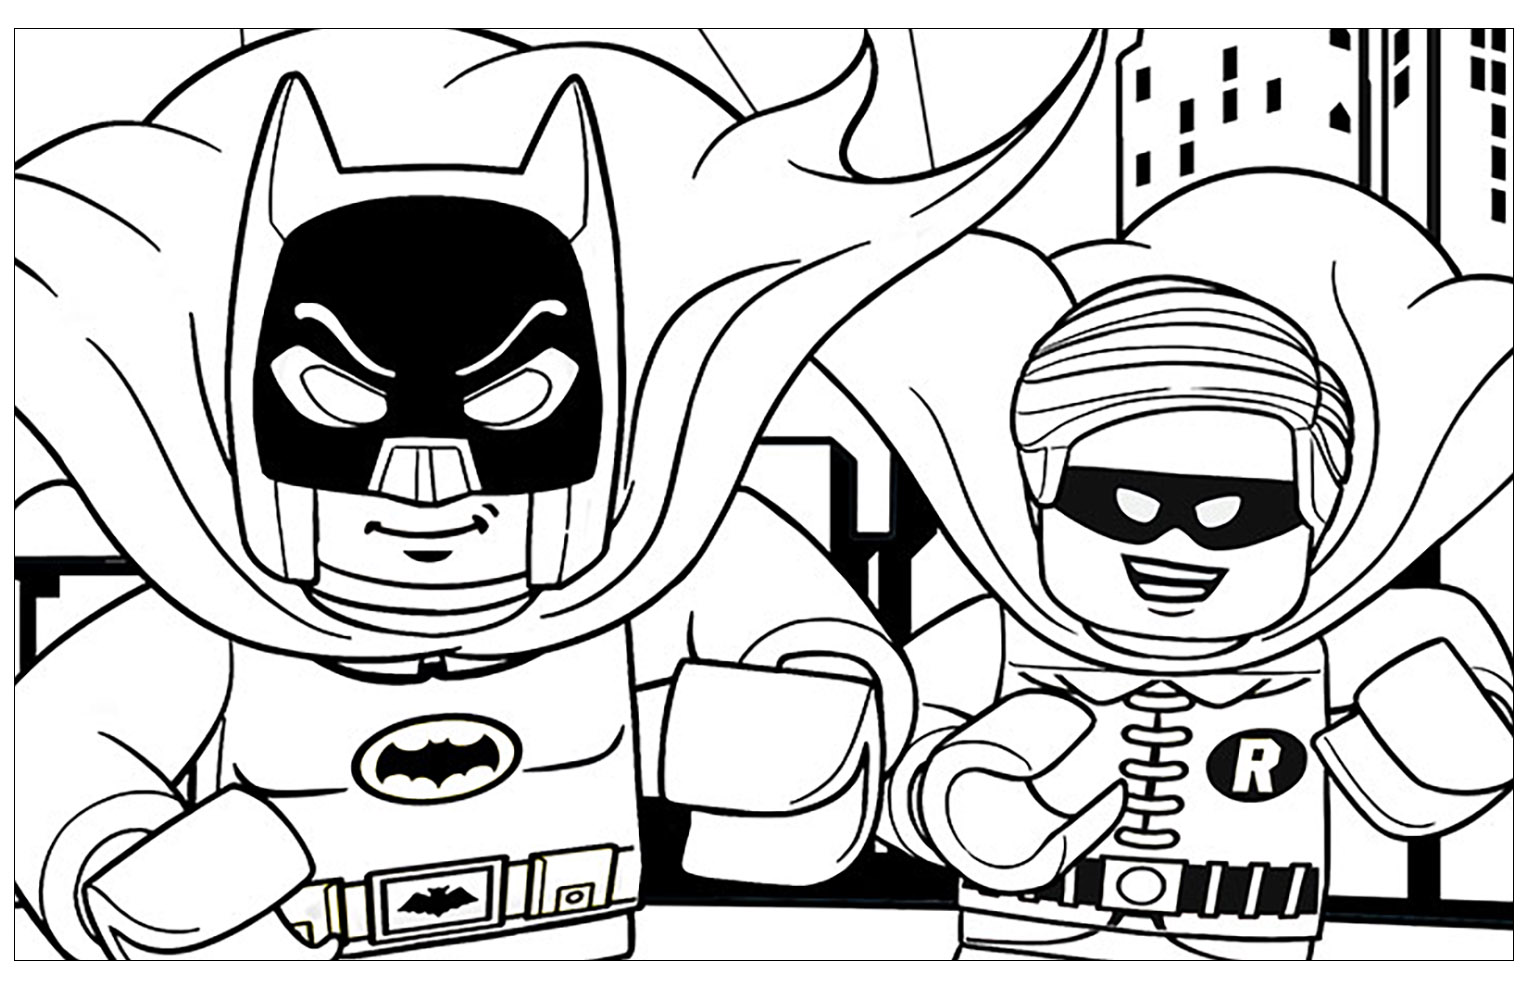 Simple Lego Batman Coloring Page To Download For Free